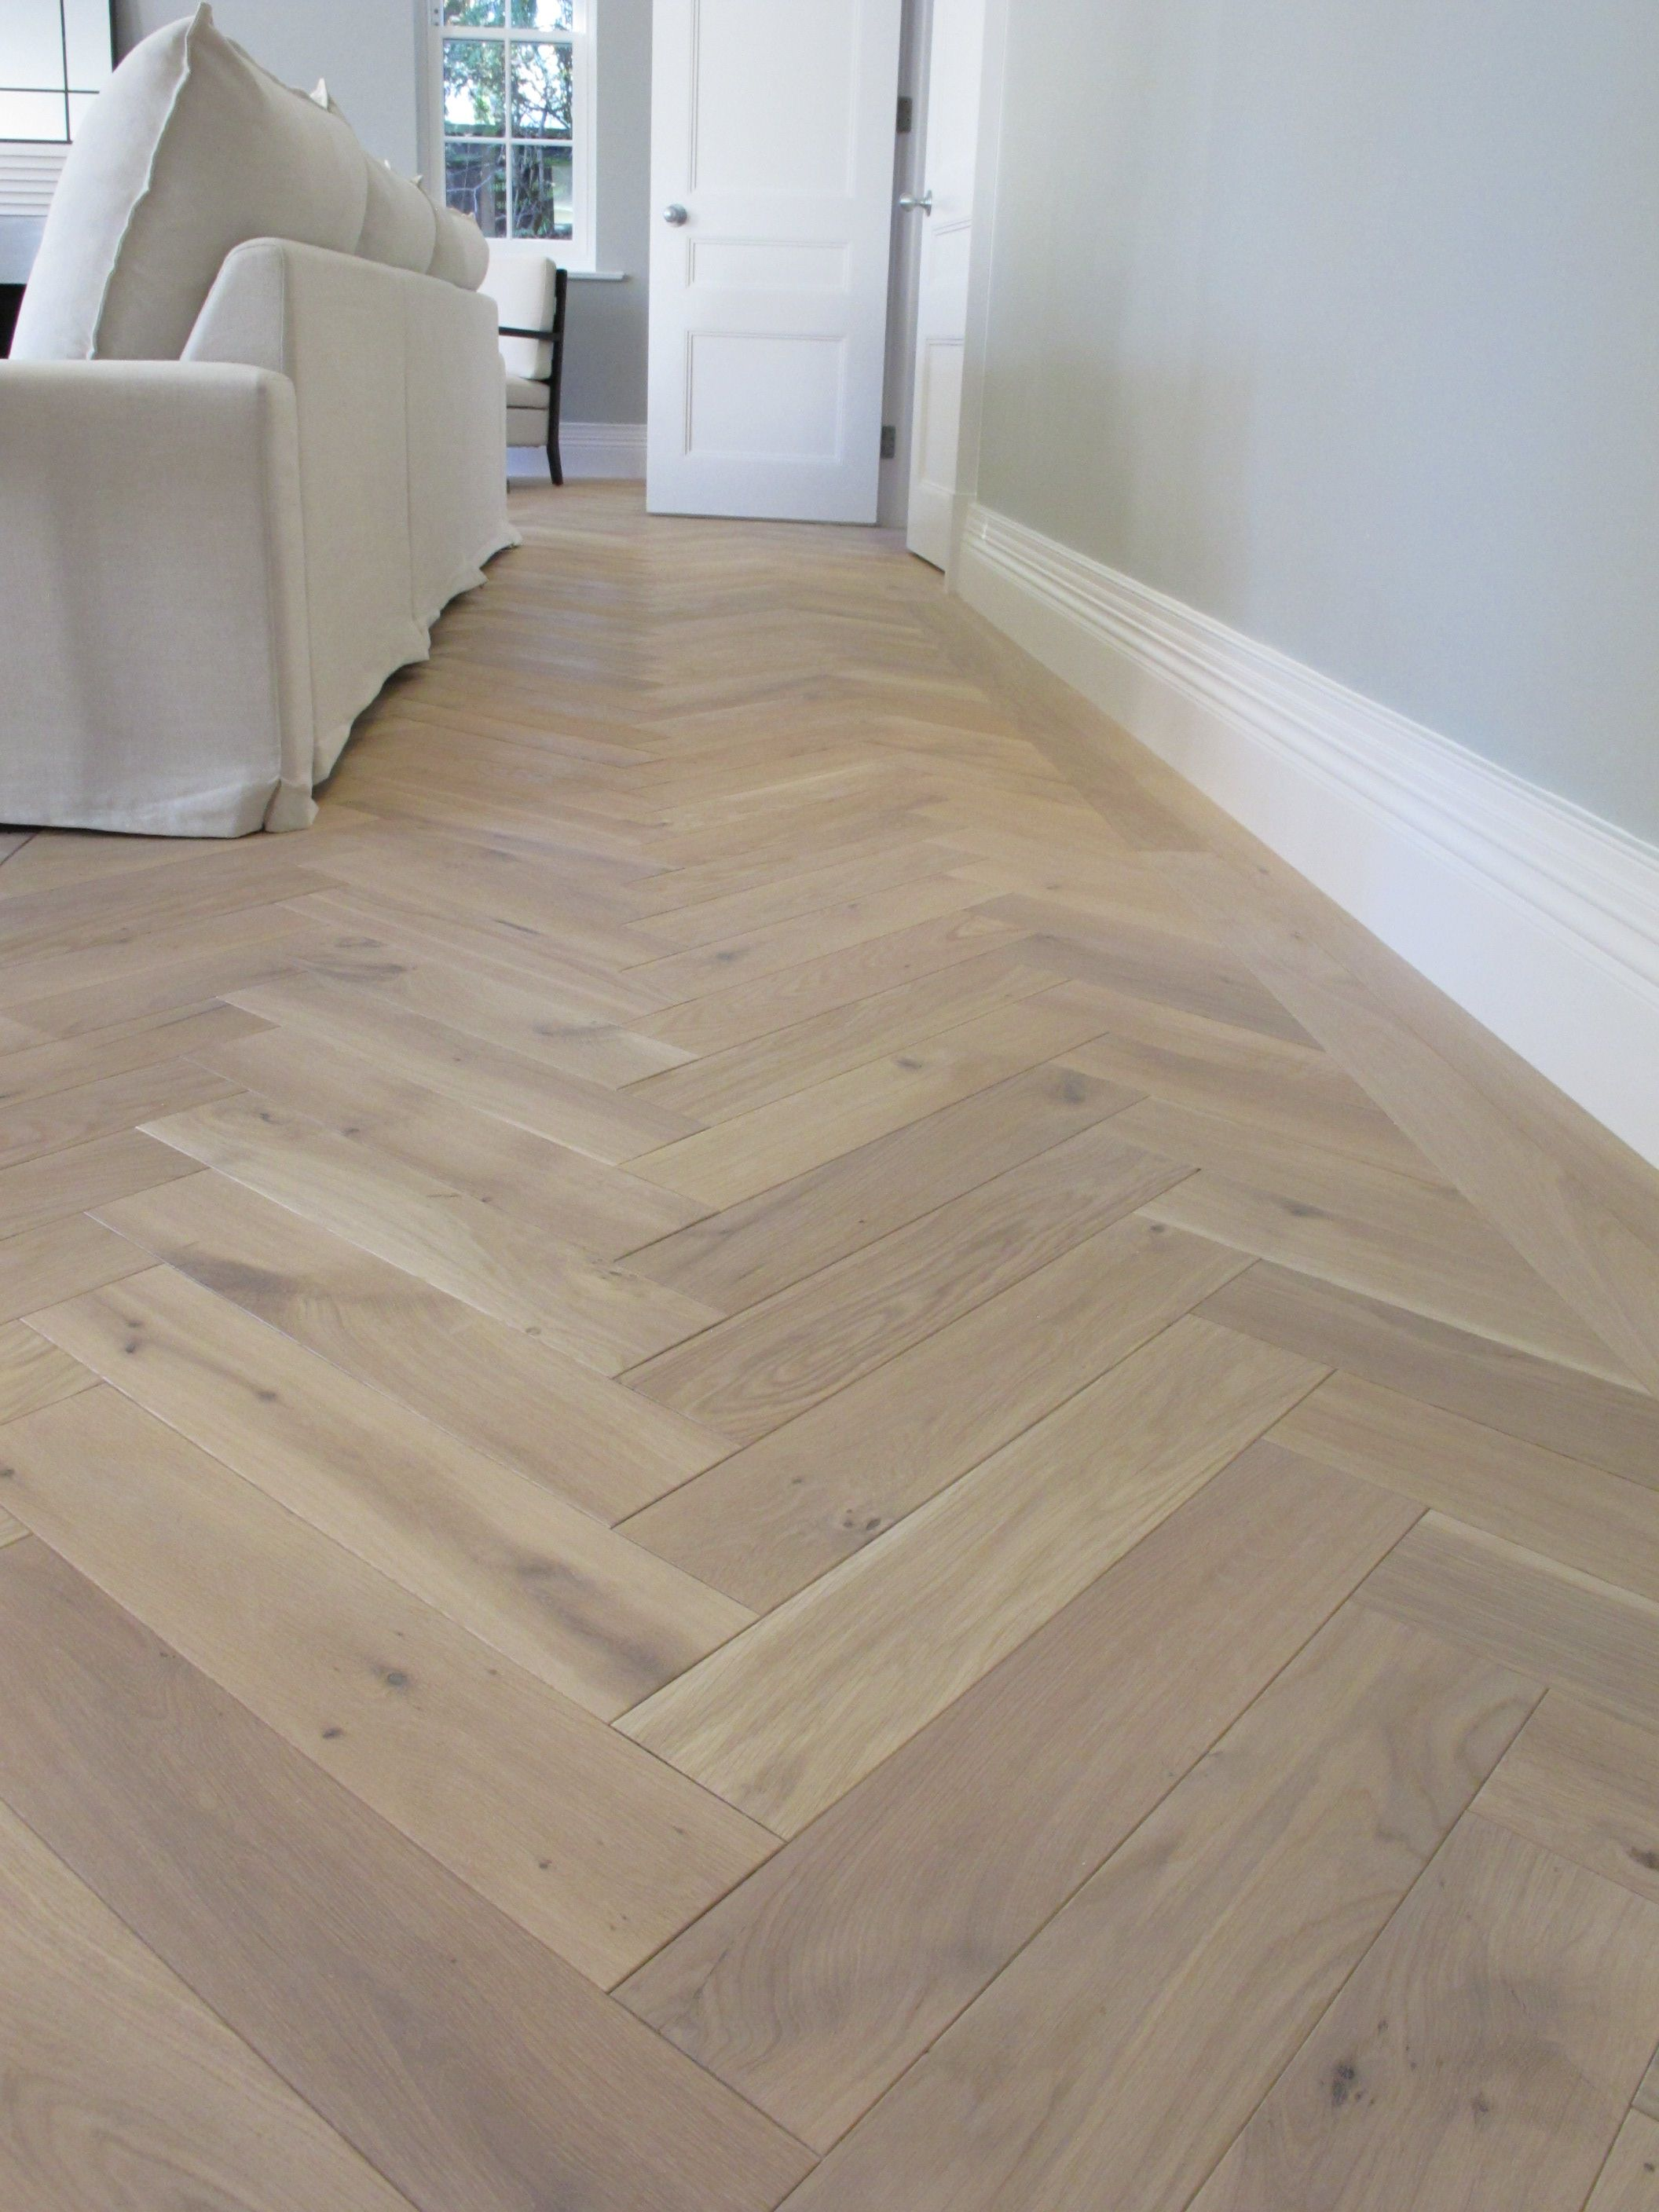 Carrelage Parquet Salon Belle Couleur Palcher Salon Home En 2019 Pinterest